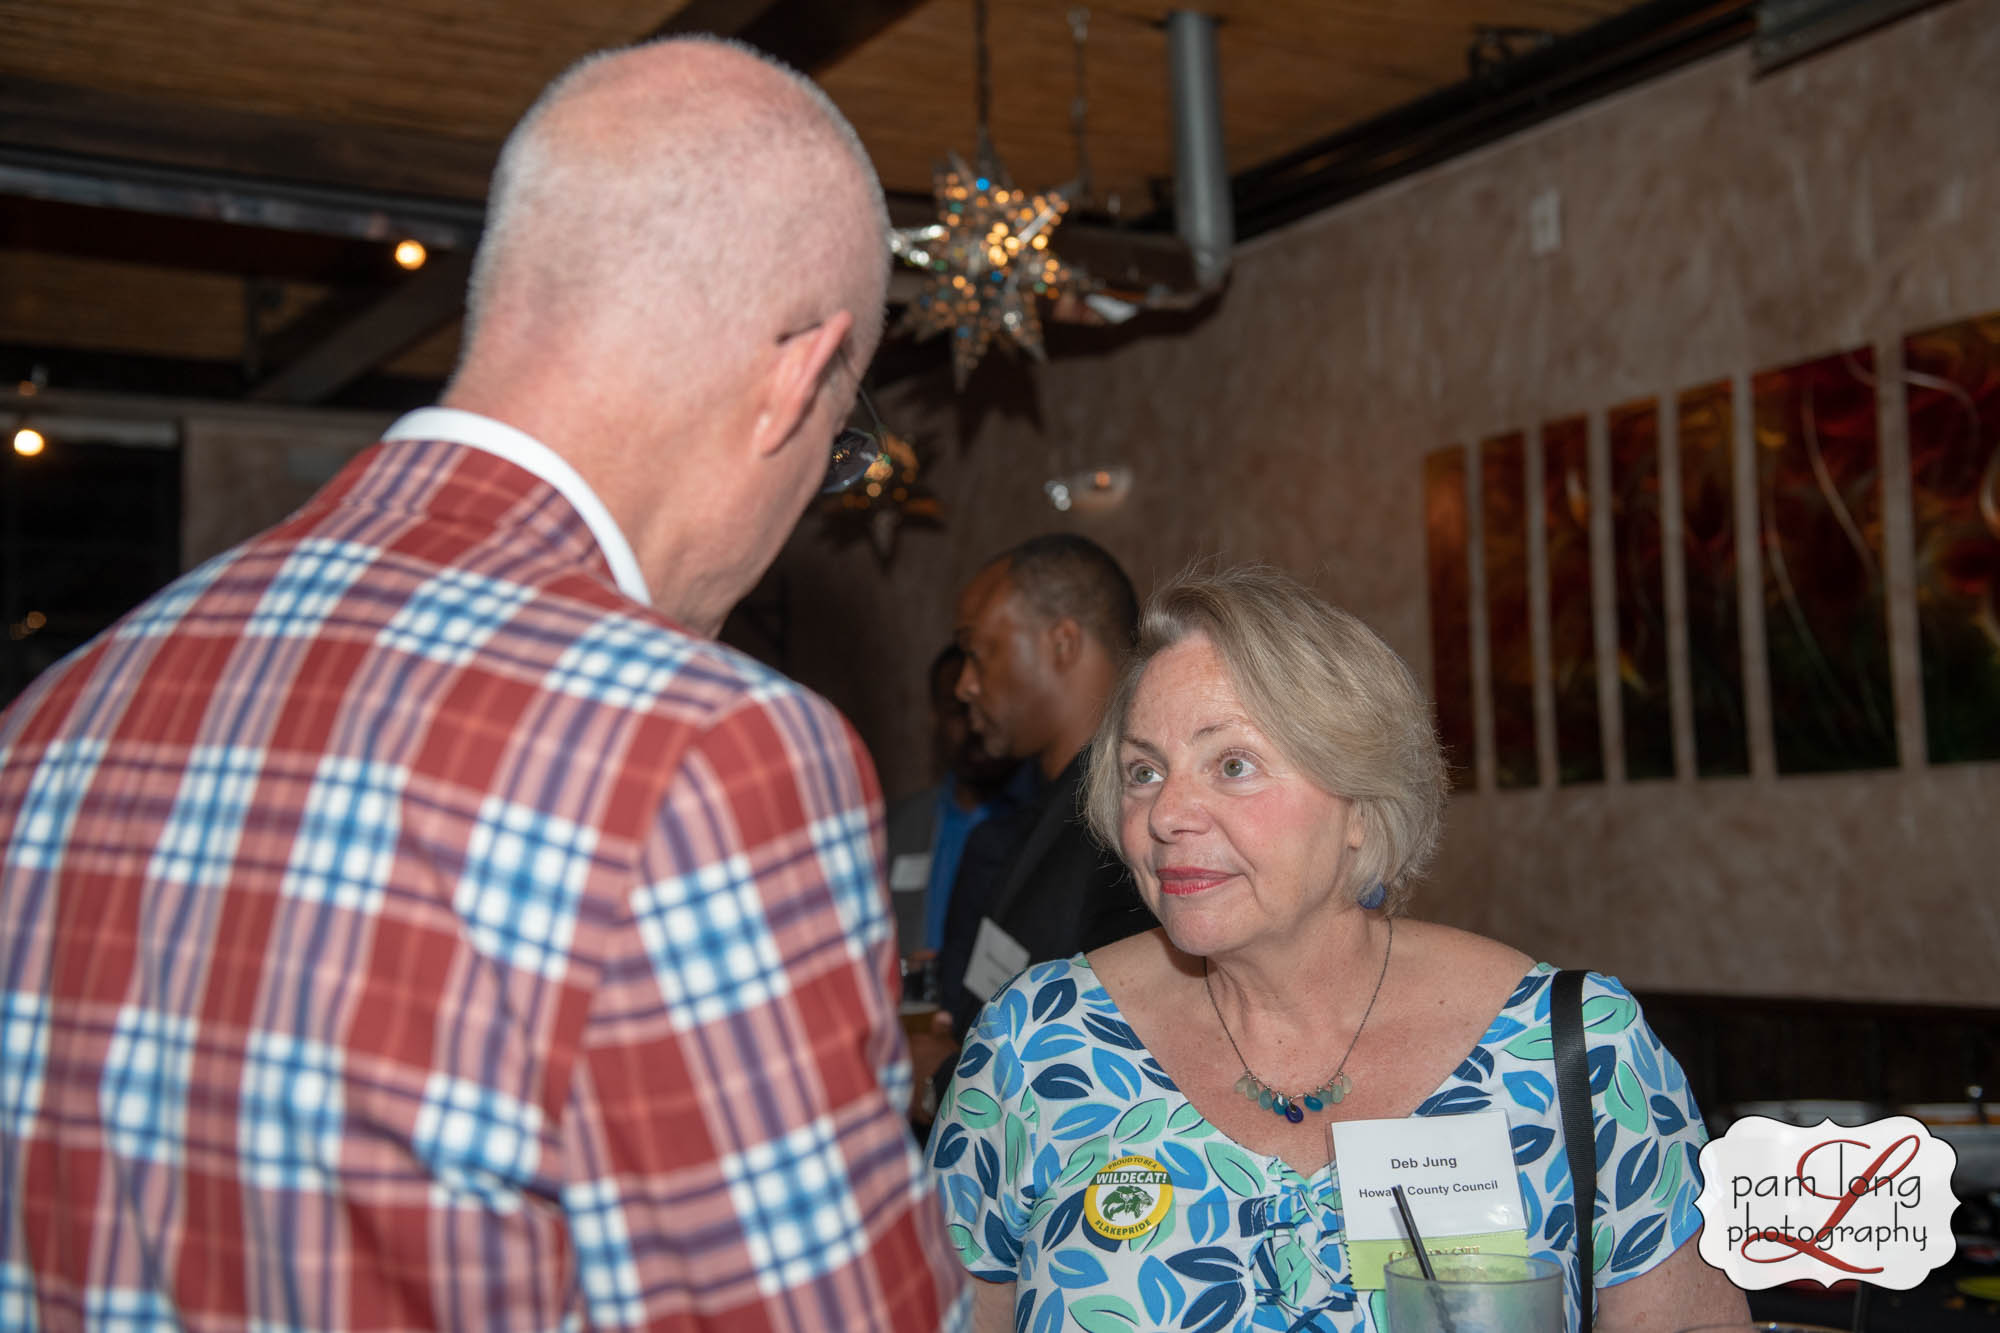 Pam-Long-Photography-HoCo-Chamber-Meet-and-Greet-90